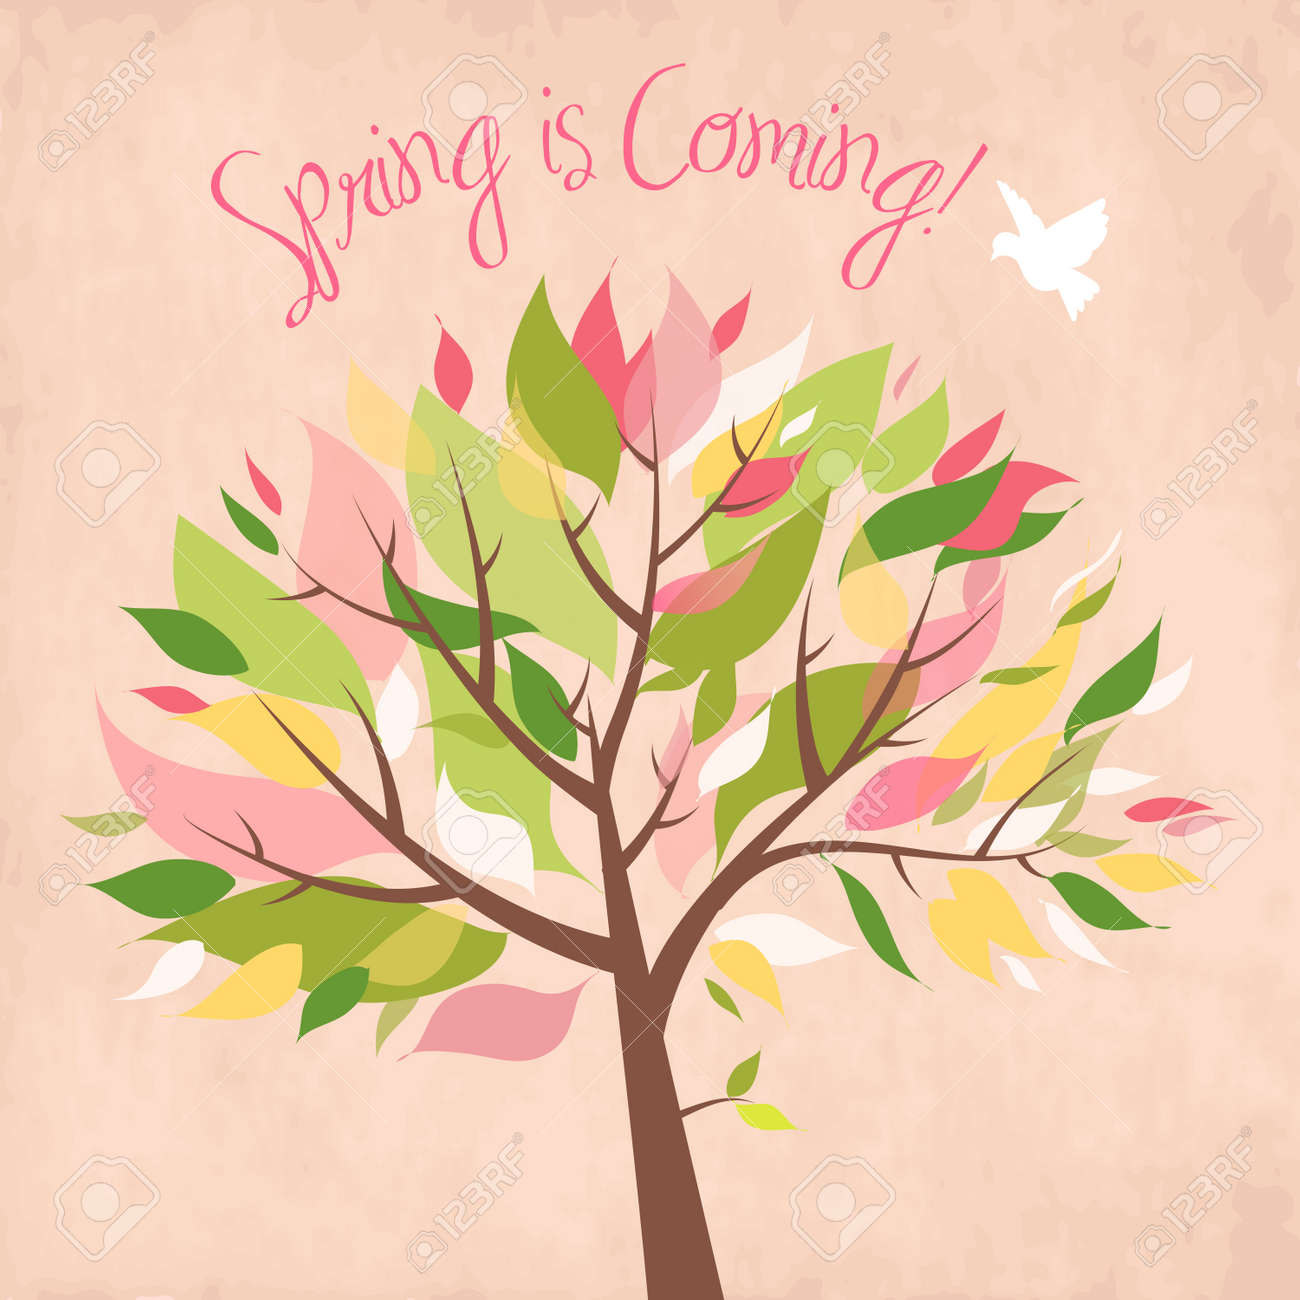 Spring is coming! Stock Vector - 12851329